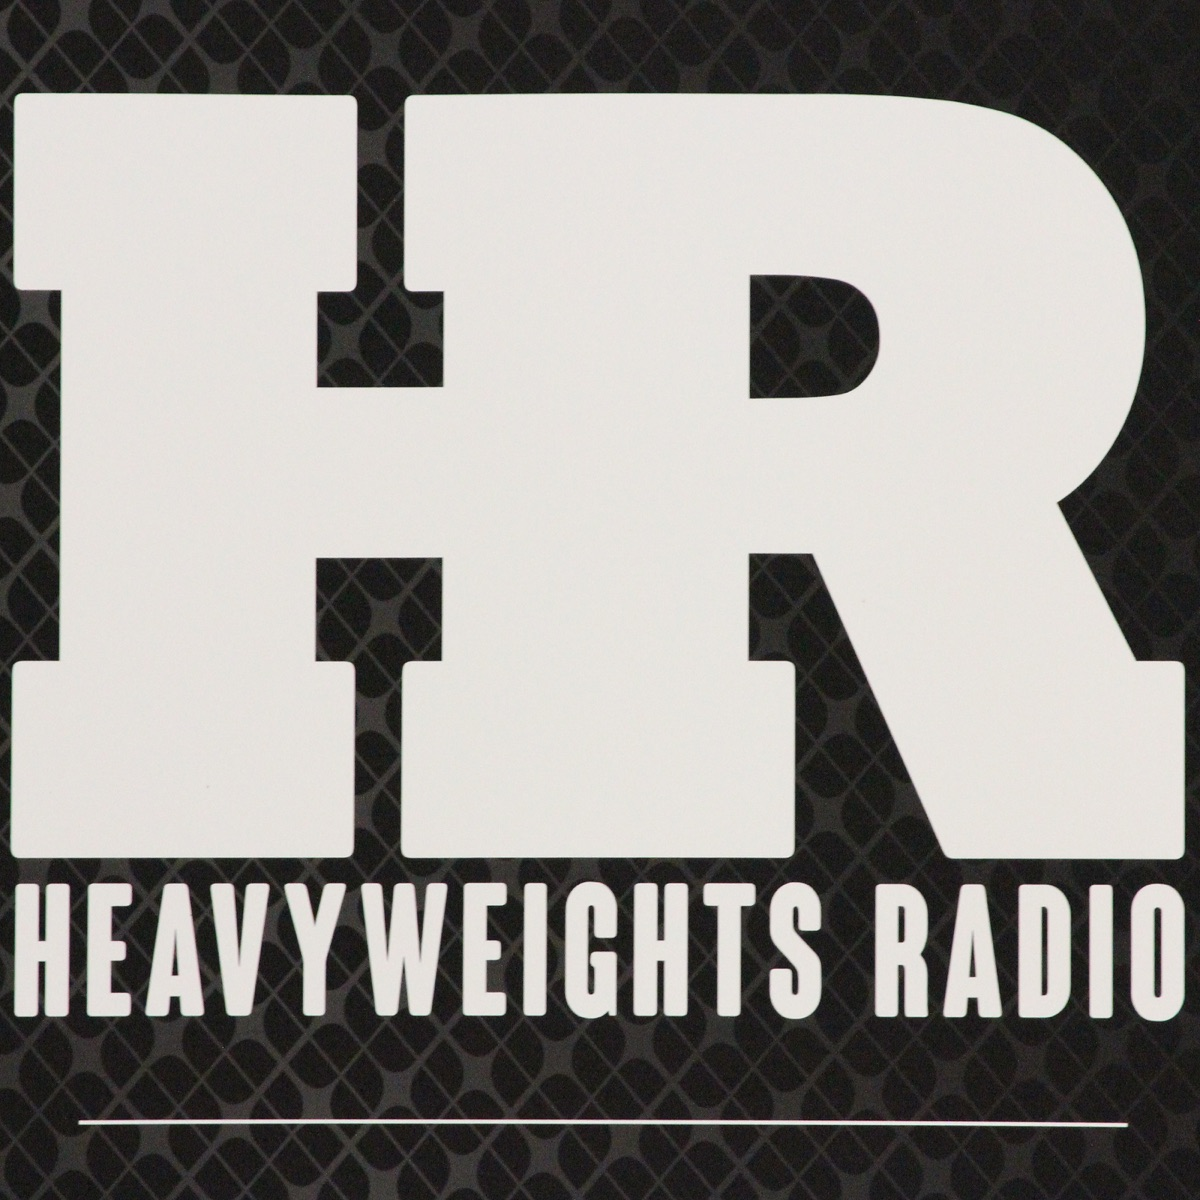 Heavyweights Radio Podcast